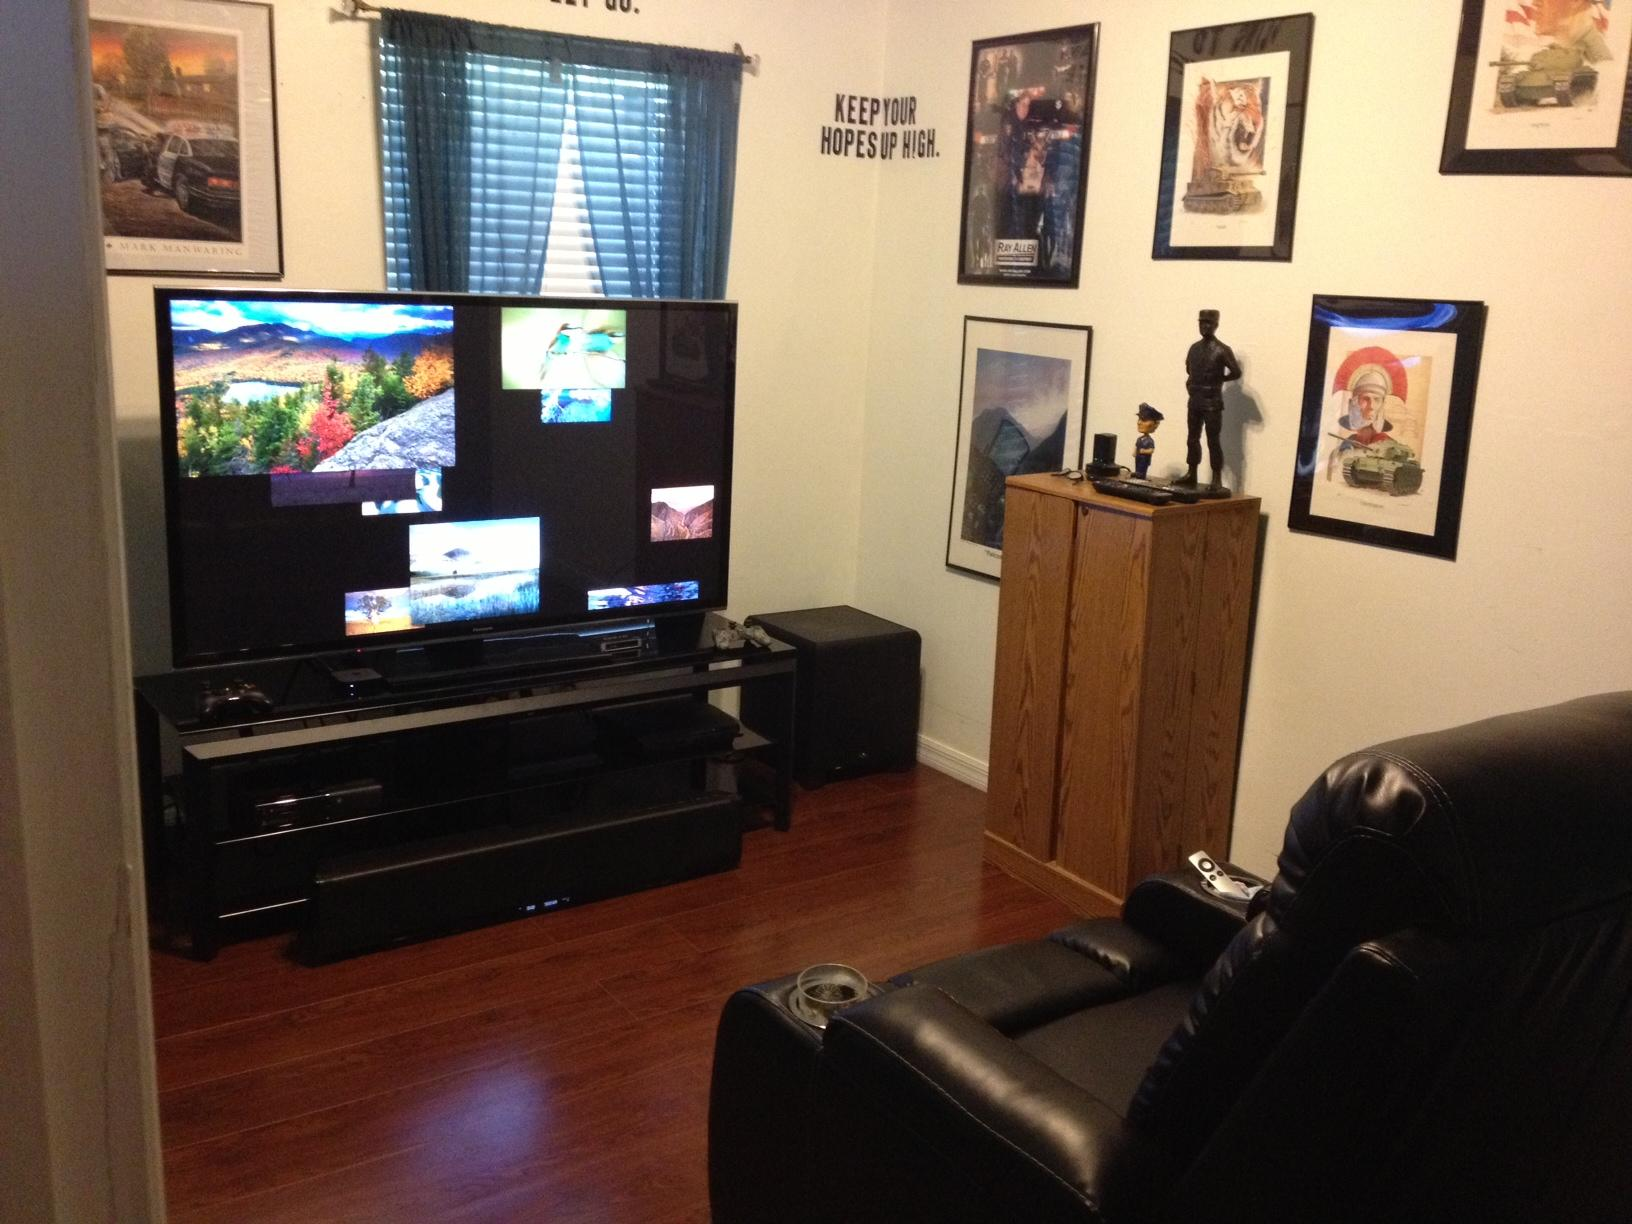 Man cave build pics in progress simhq forums - Man cave ideas for small spaces collection ...